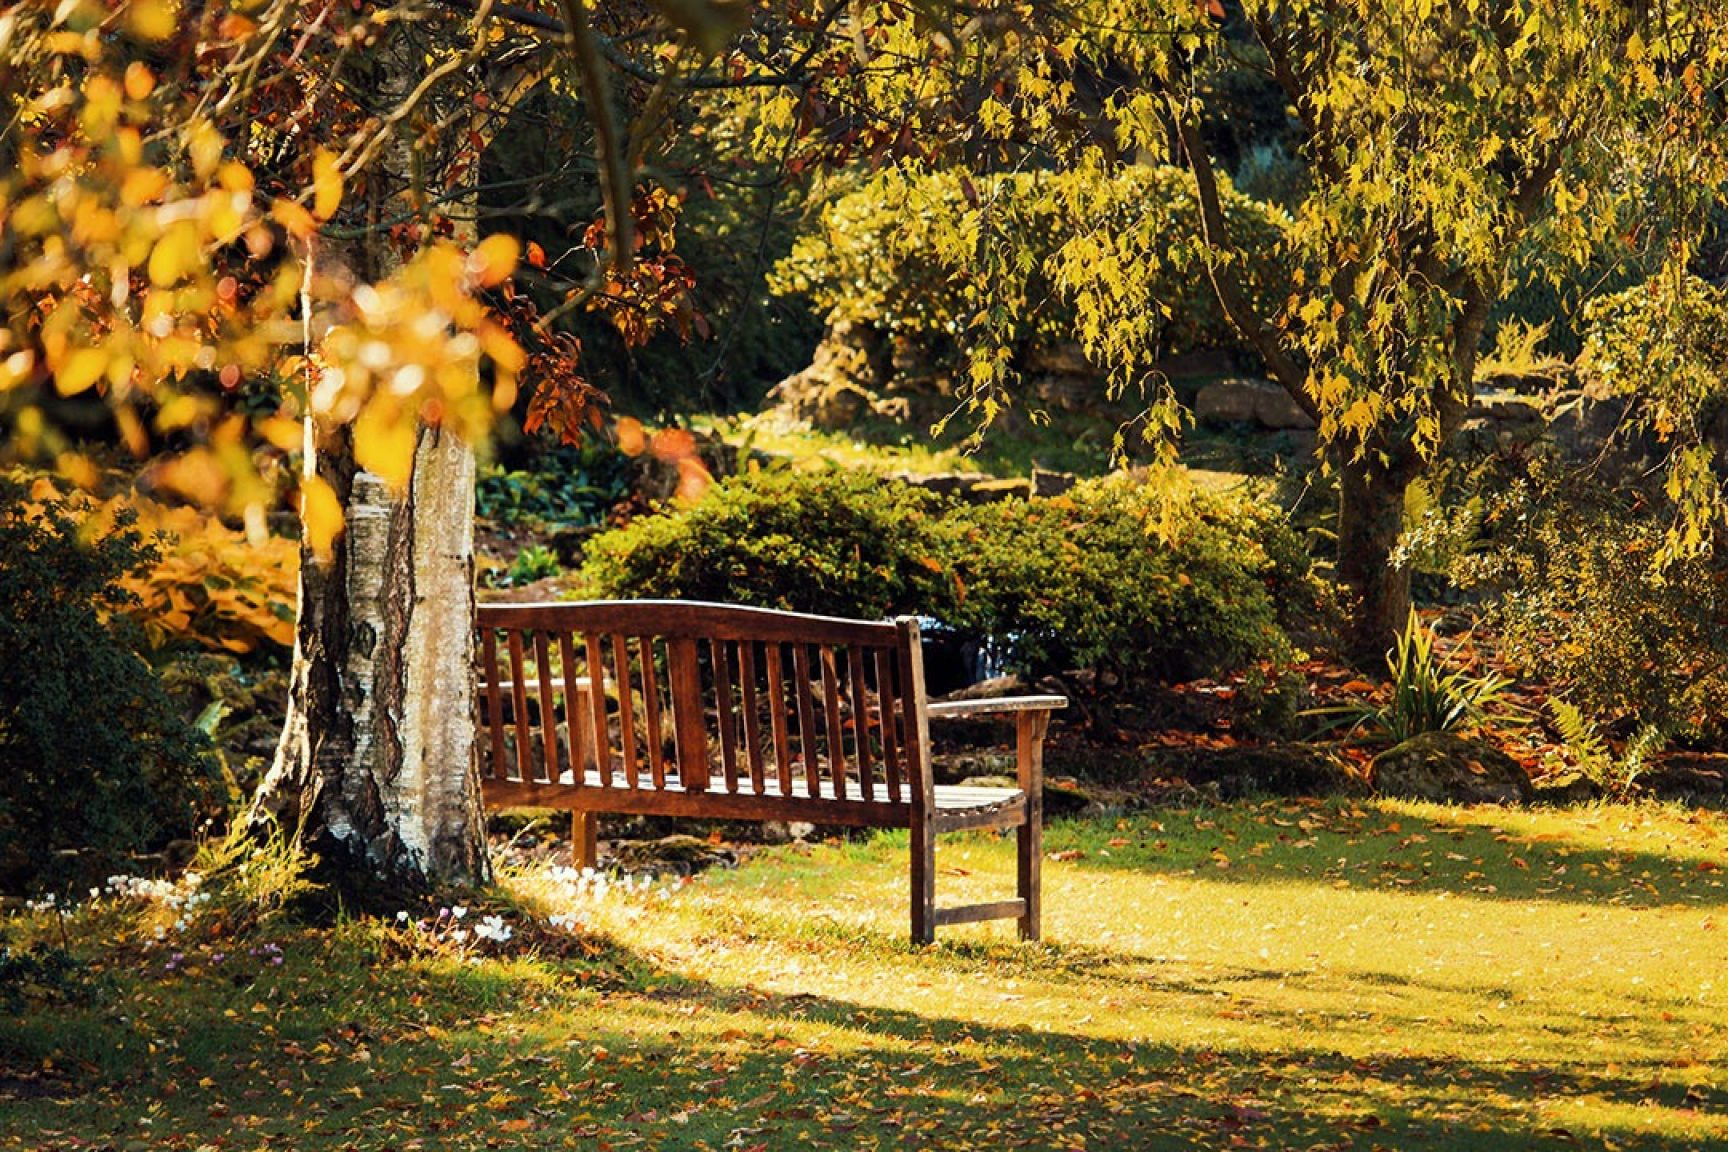 A park, there is a bench next to a tree and it is lit up by the sun.